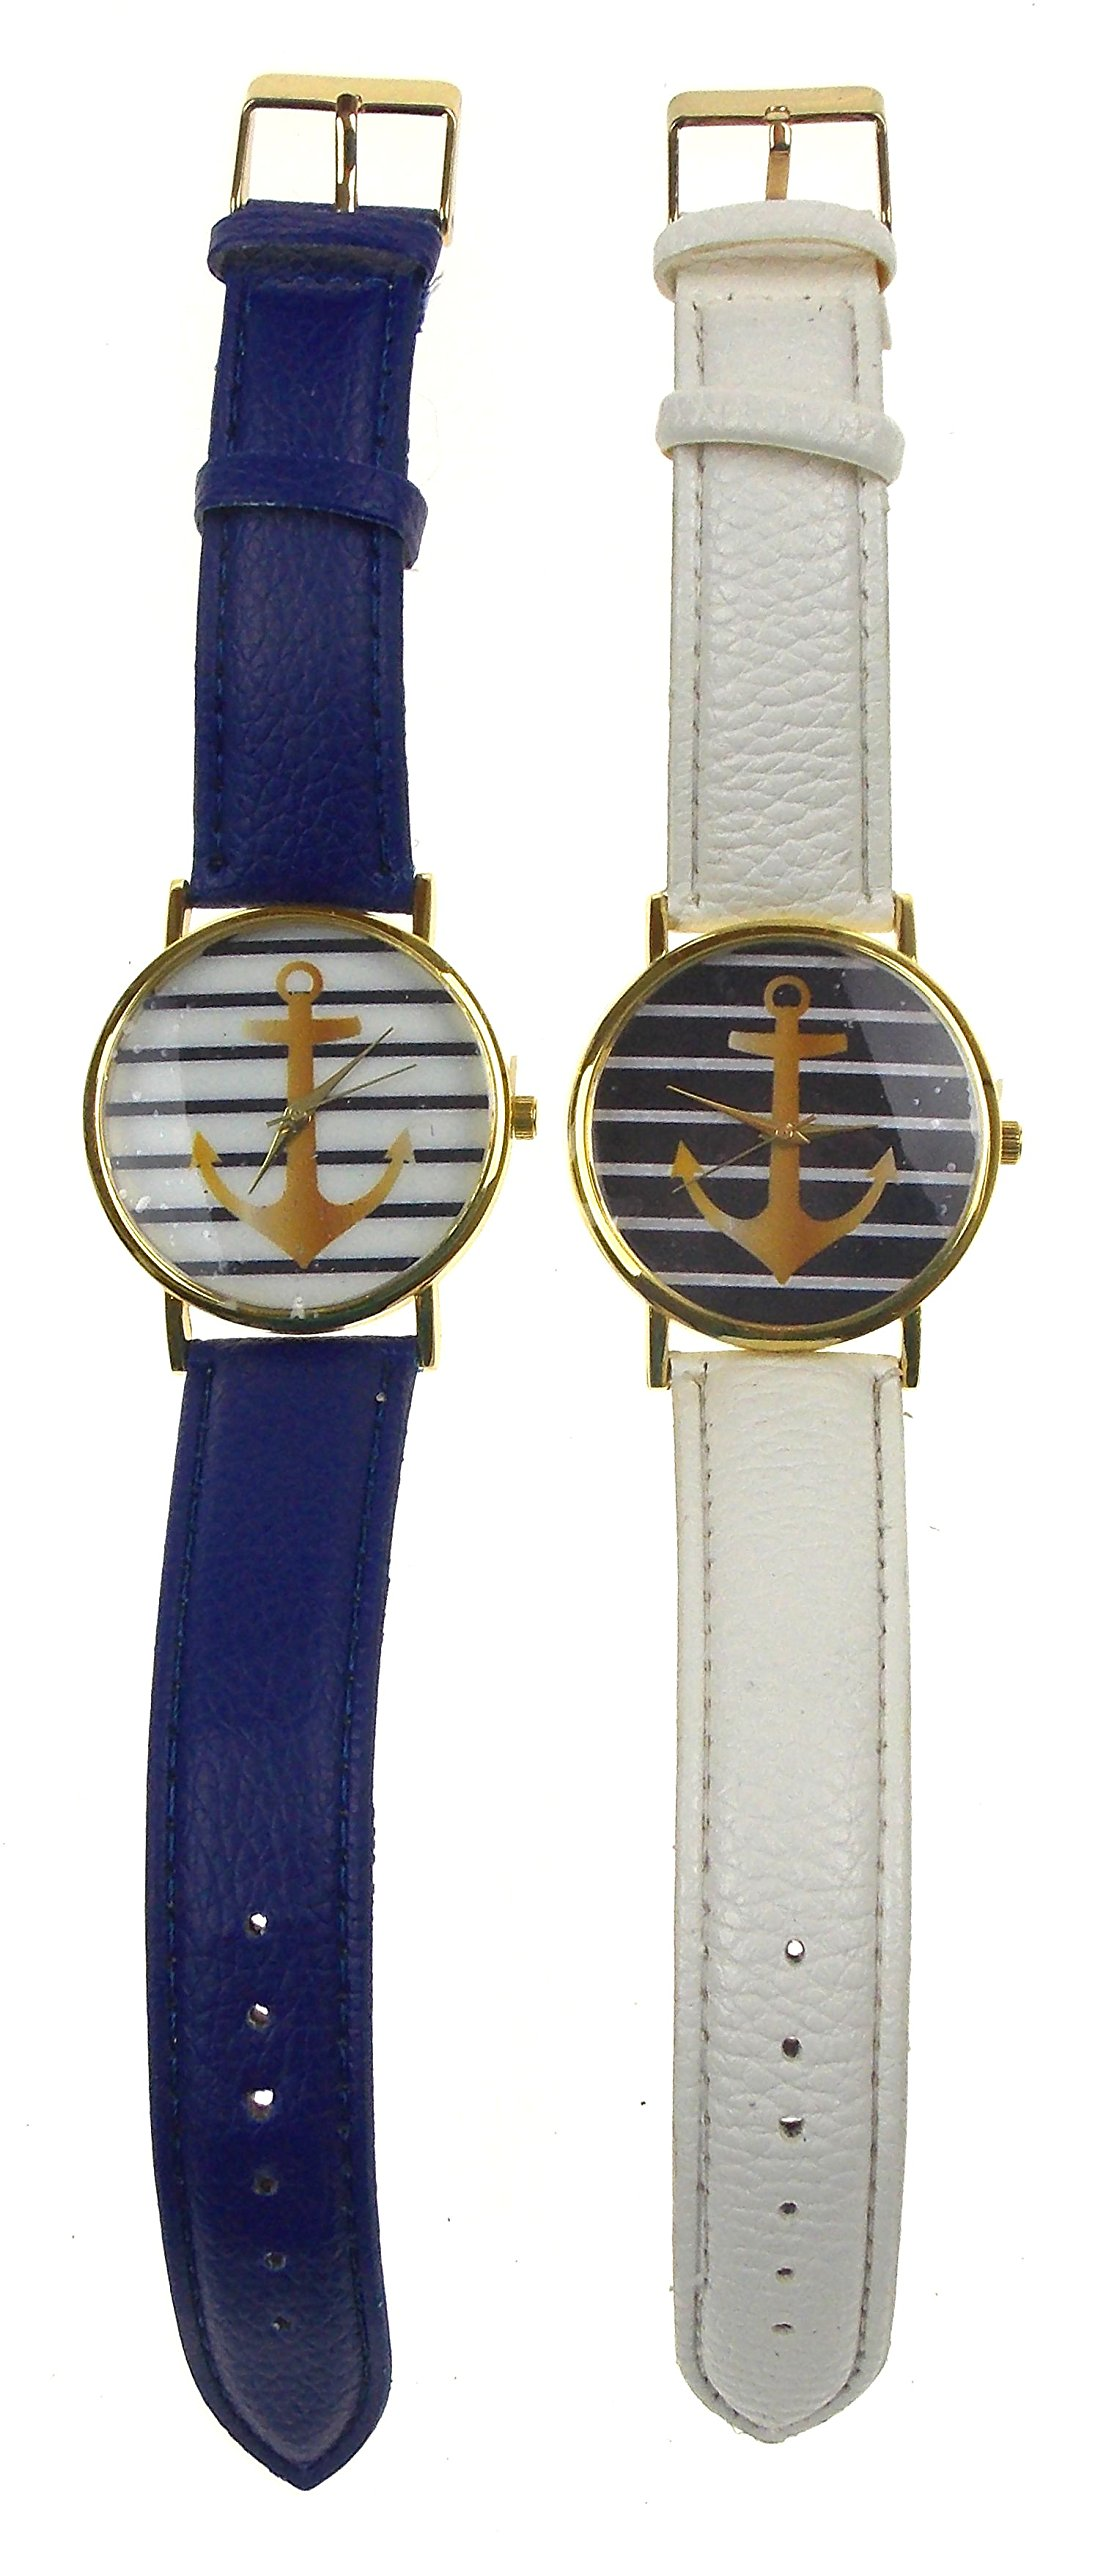 Nautical Anchor Pattern Watch Bundle - 2 Watches with Large Anchor Blue & White Colors